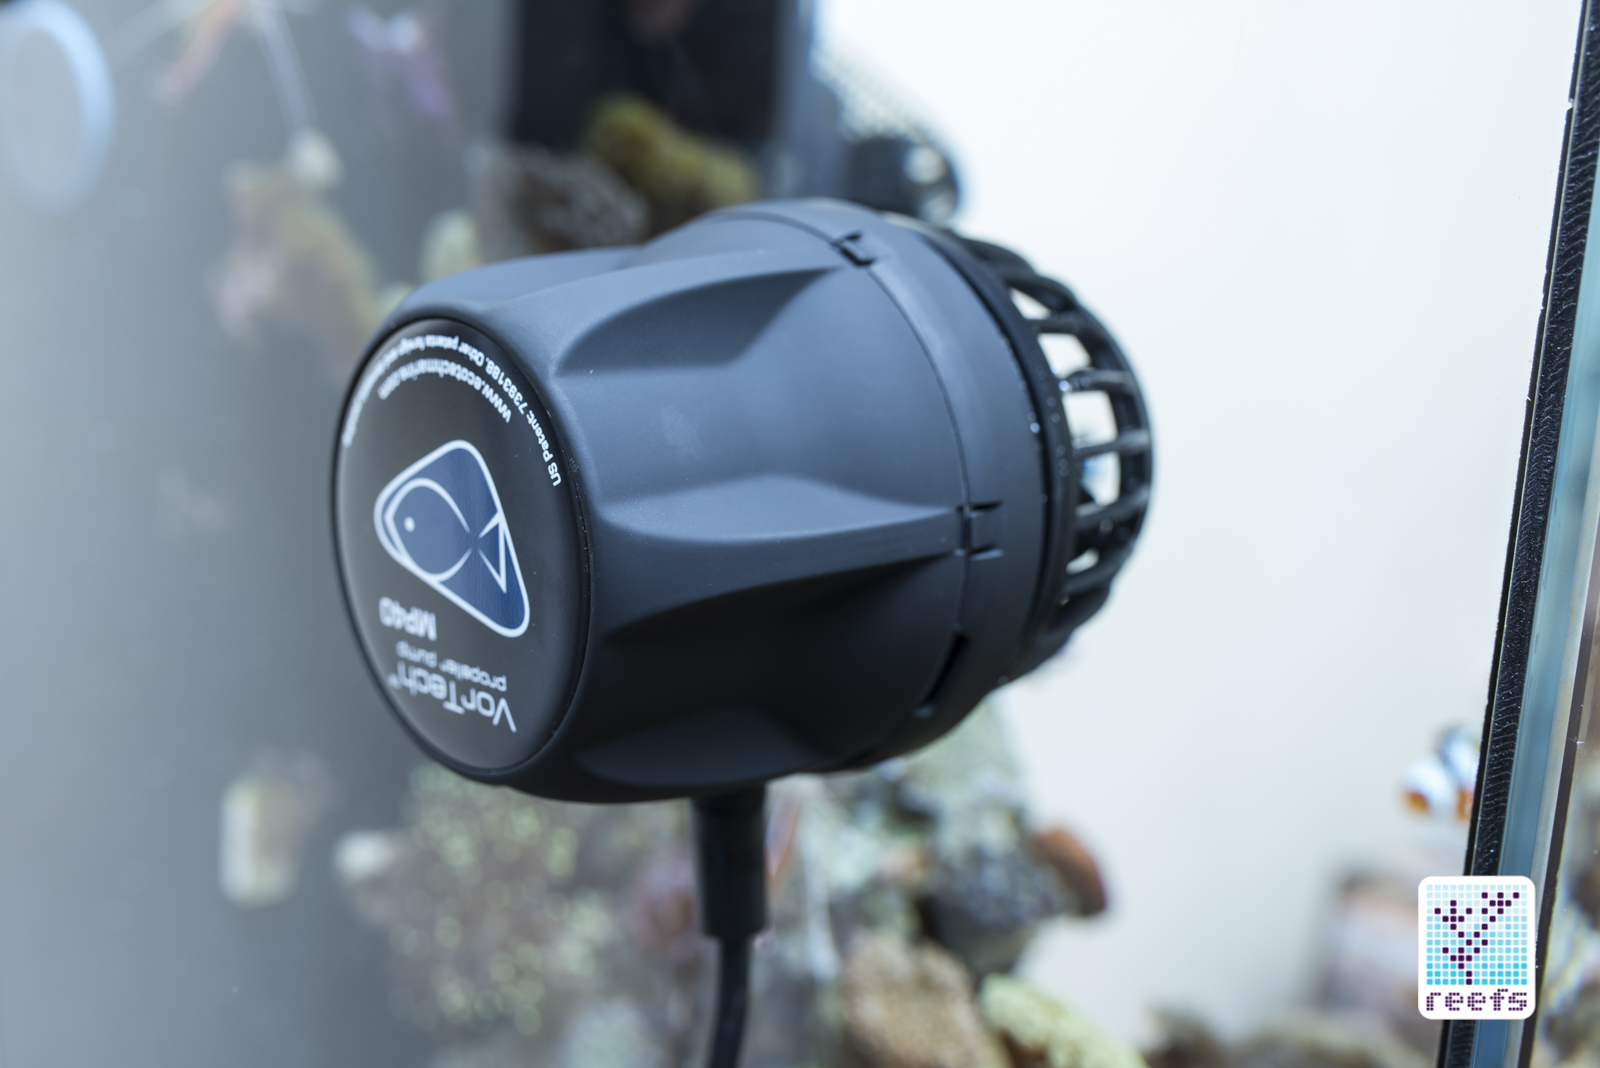 Vortech MP40 qd in aquarium